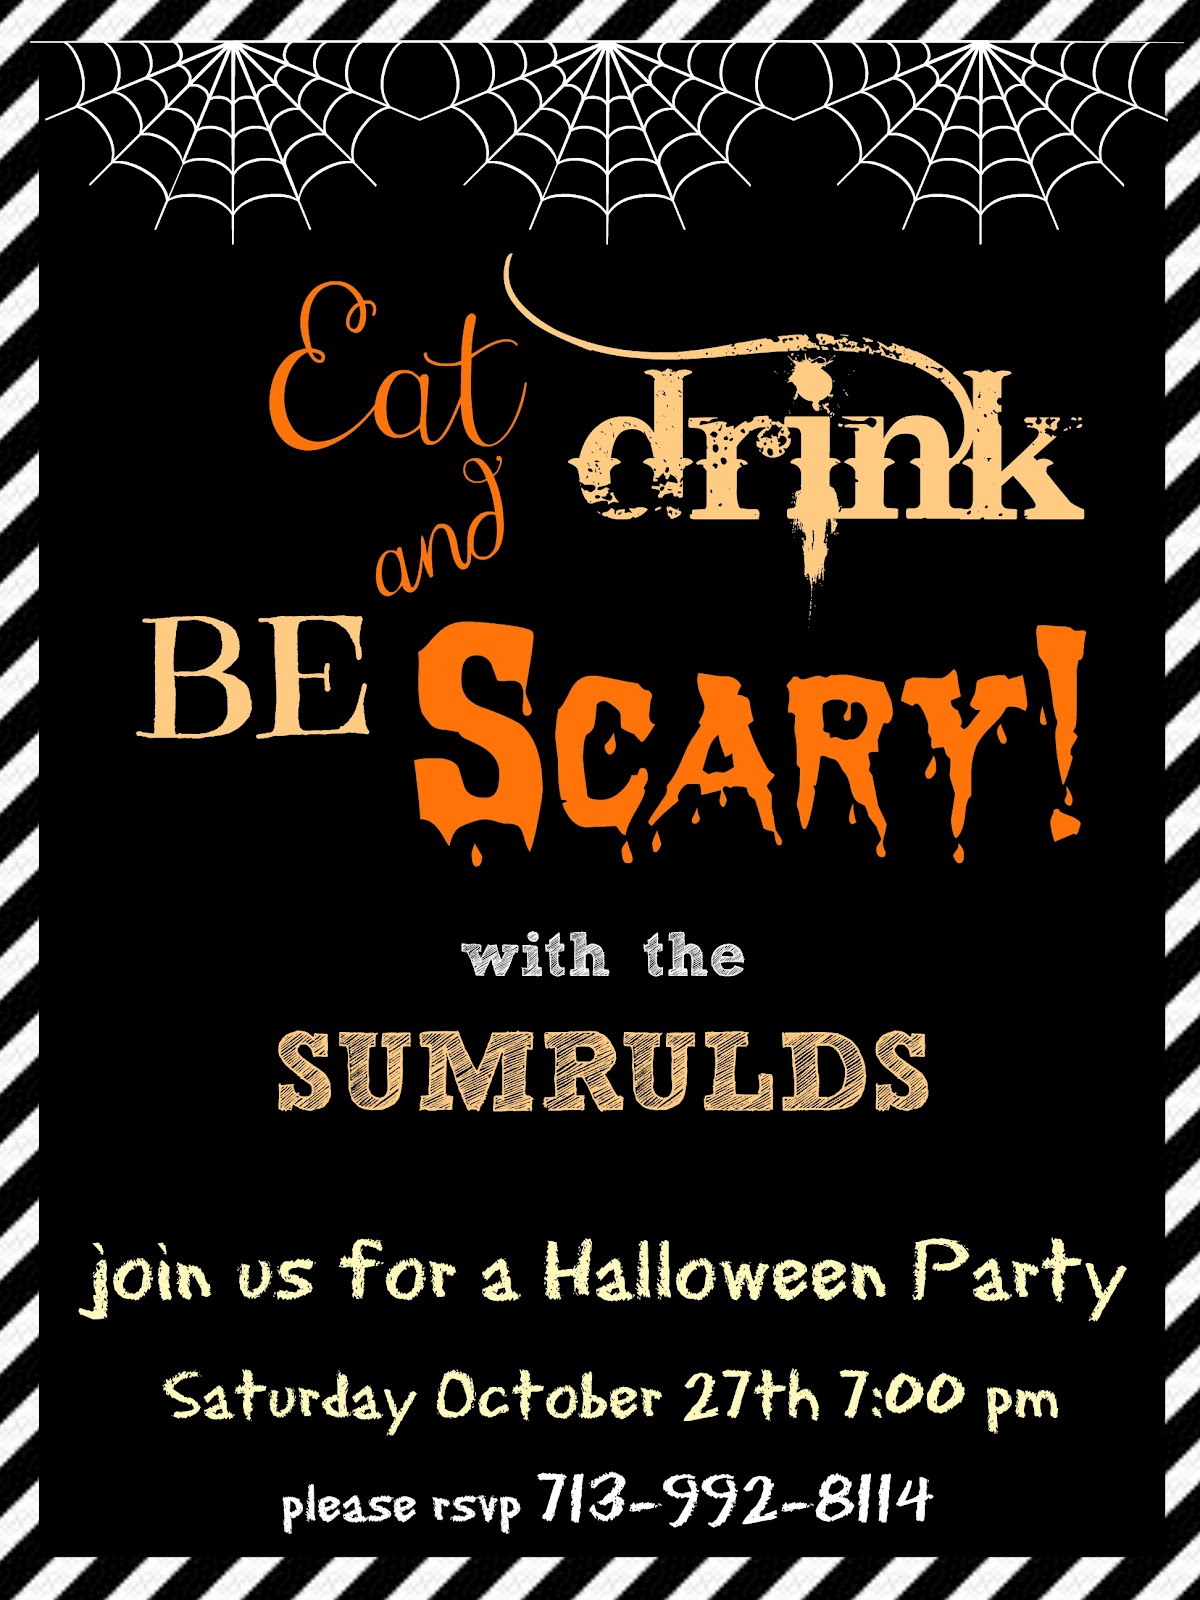 38 Create Your Own Halloween Party Invitation Template Printable For intended for sizing 1200 X 1600